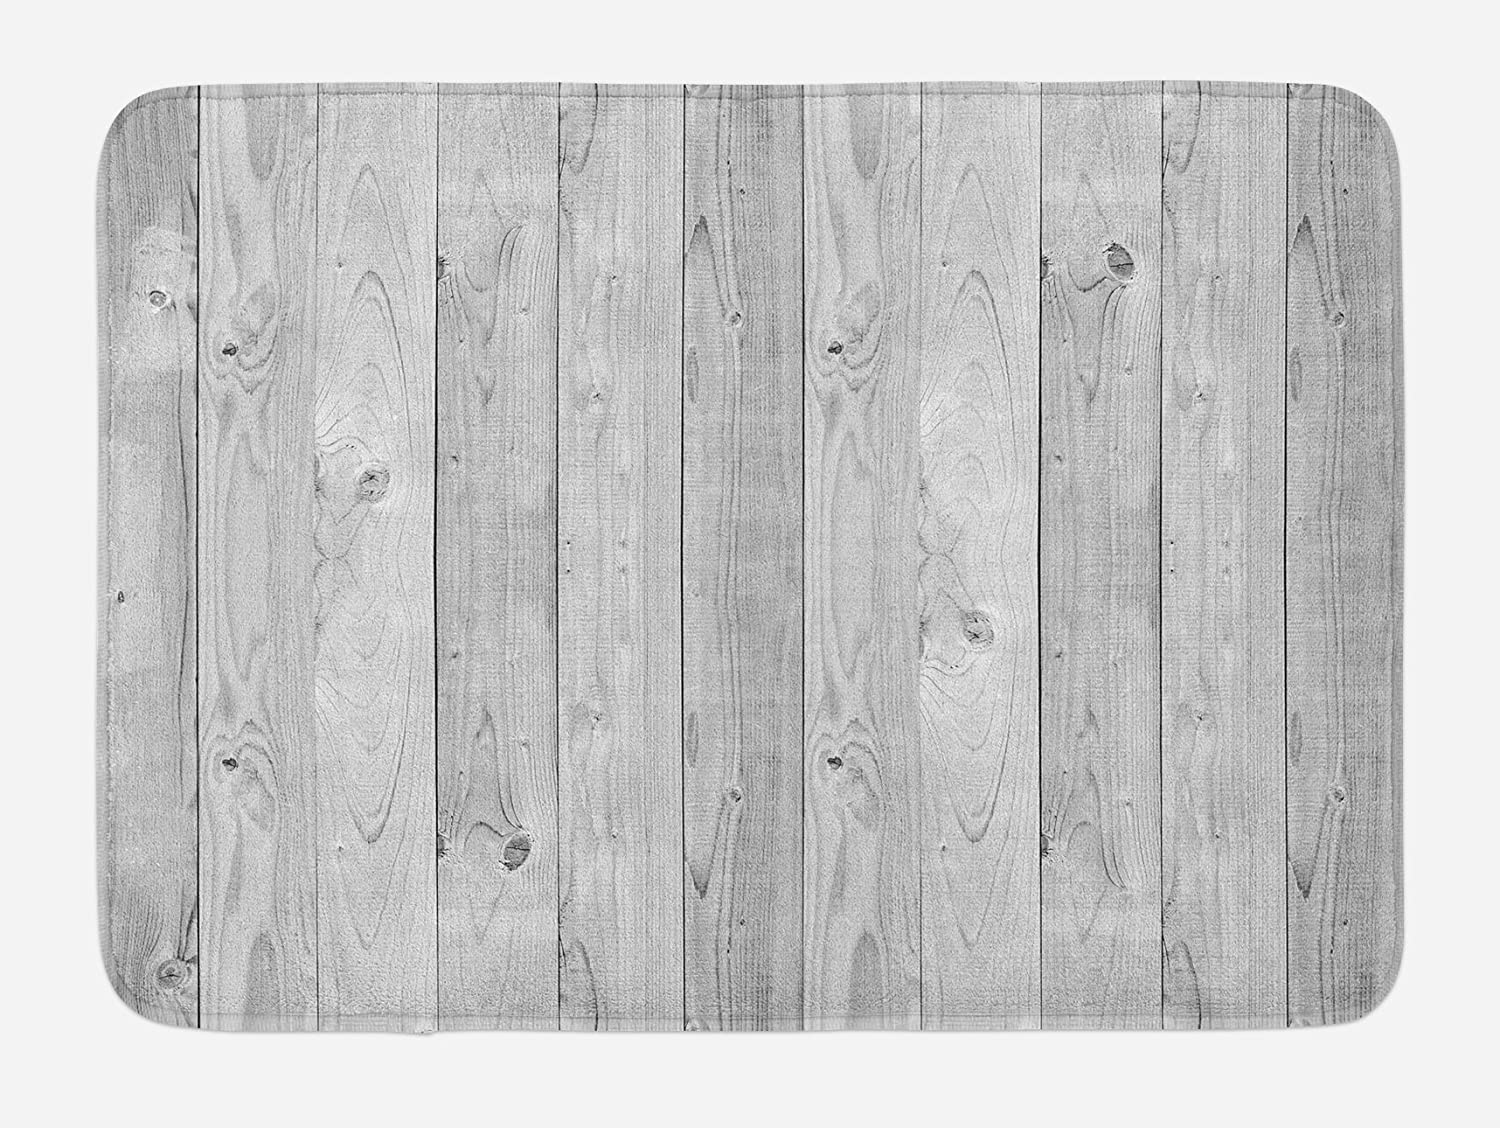 Lunarable Grey Bath Mat Picture of Smooth Oak Wood Texture in Old Fashion Retro Style Horizontal Nature Design Home Gray 29.5 W X 17.5 W Inches Plush Bathroom Decor Mat with Non Slip Backing